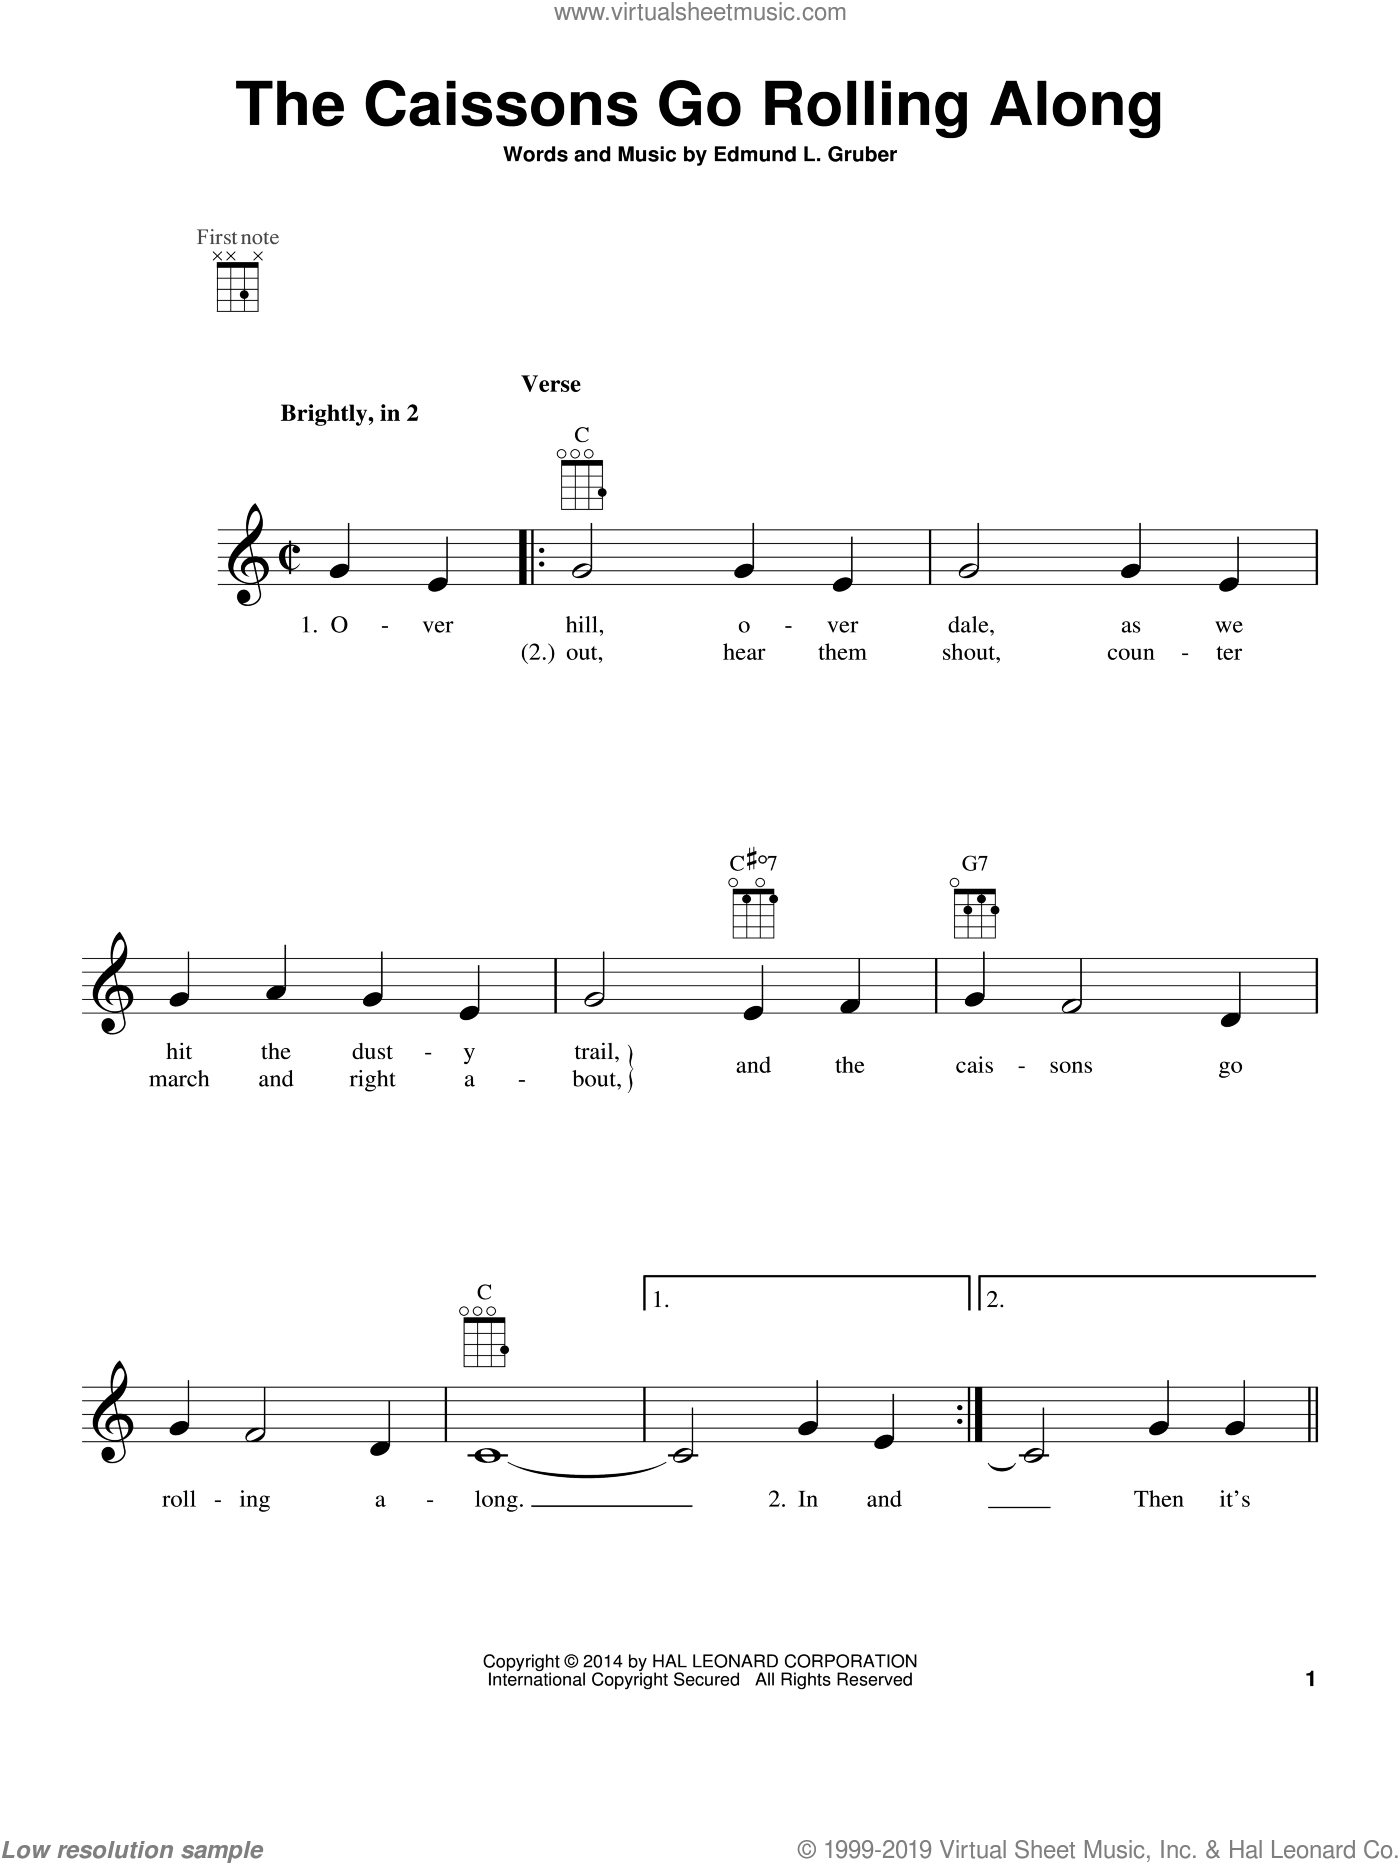 The Caissons Go Rolling Along sheet music for ukulele by Edmund L. Gruber, intermediate skill level